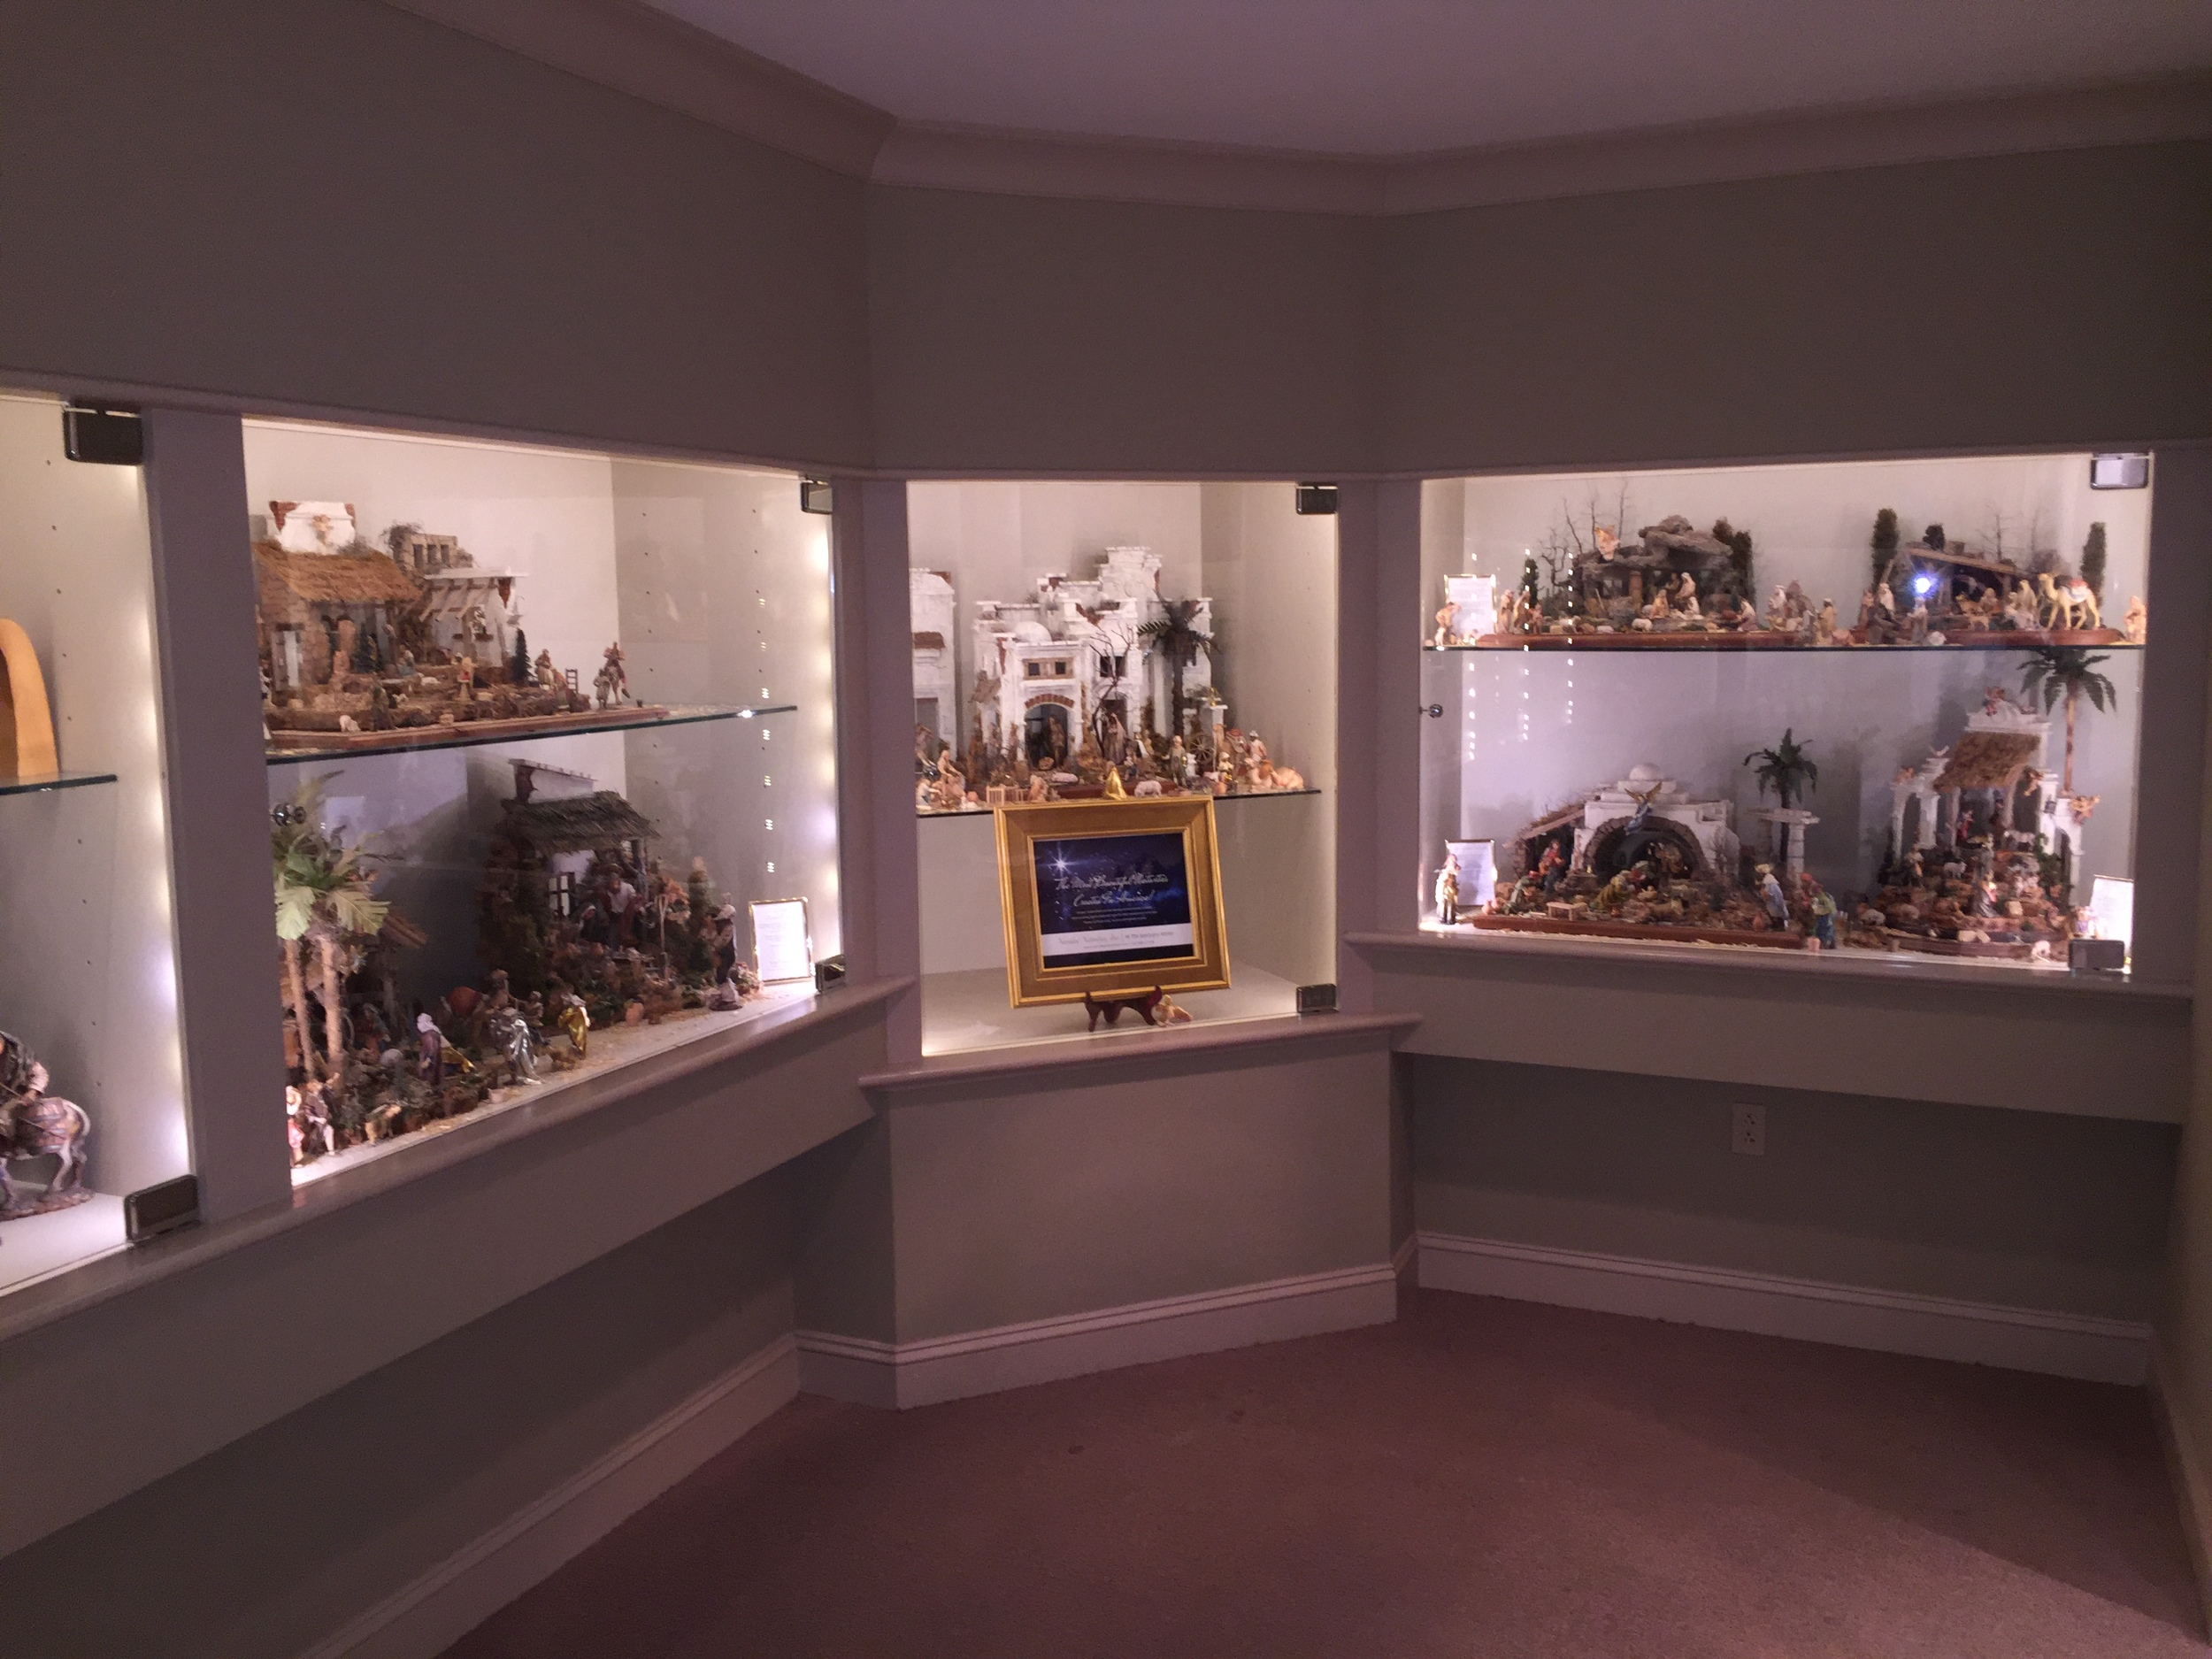 INSTALLATION OF 7 NATIVITIES FOR SPECIAL WORLD MEETING OF FAMILIES AND PAPAL VISIT, AT BYERS' CHOICE MUSEUM.